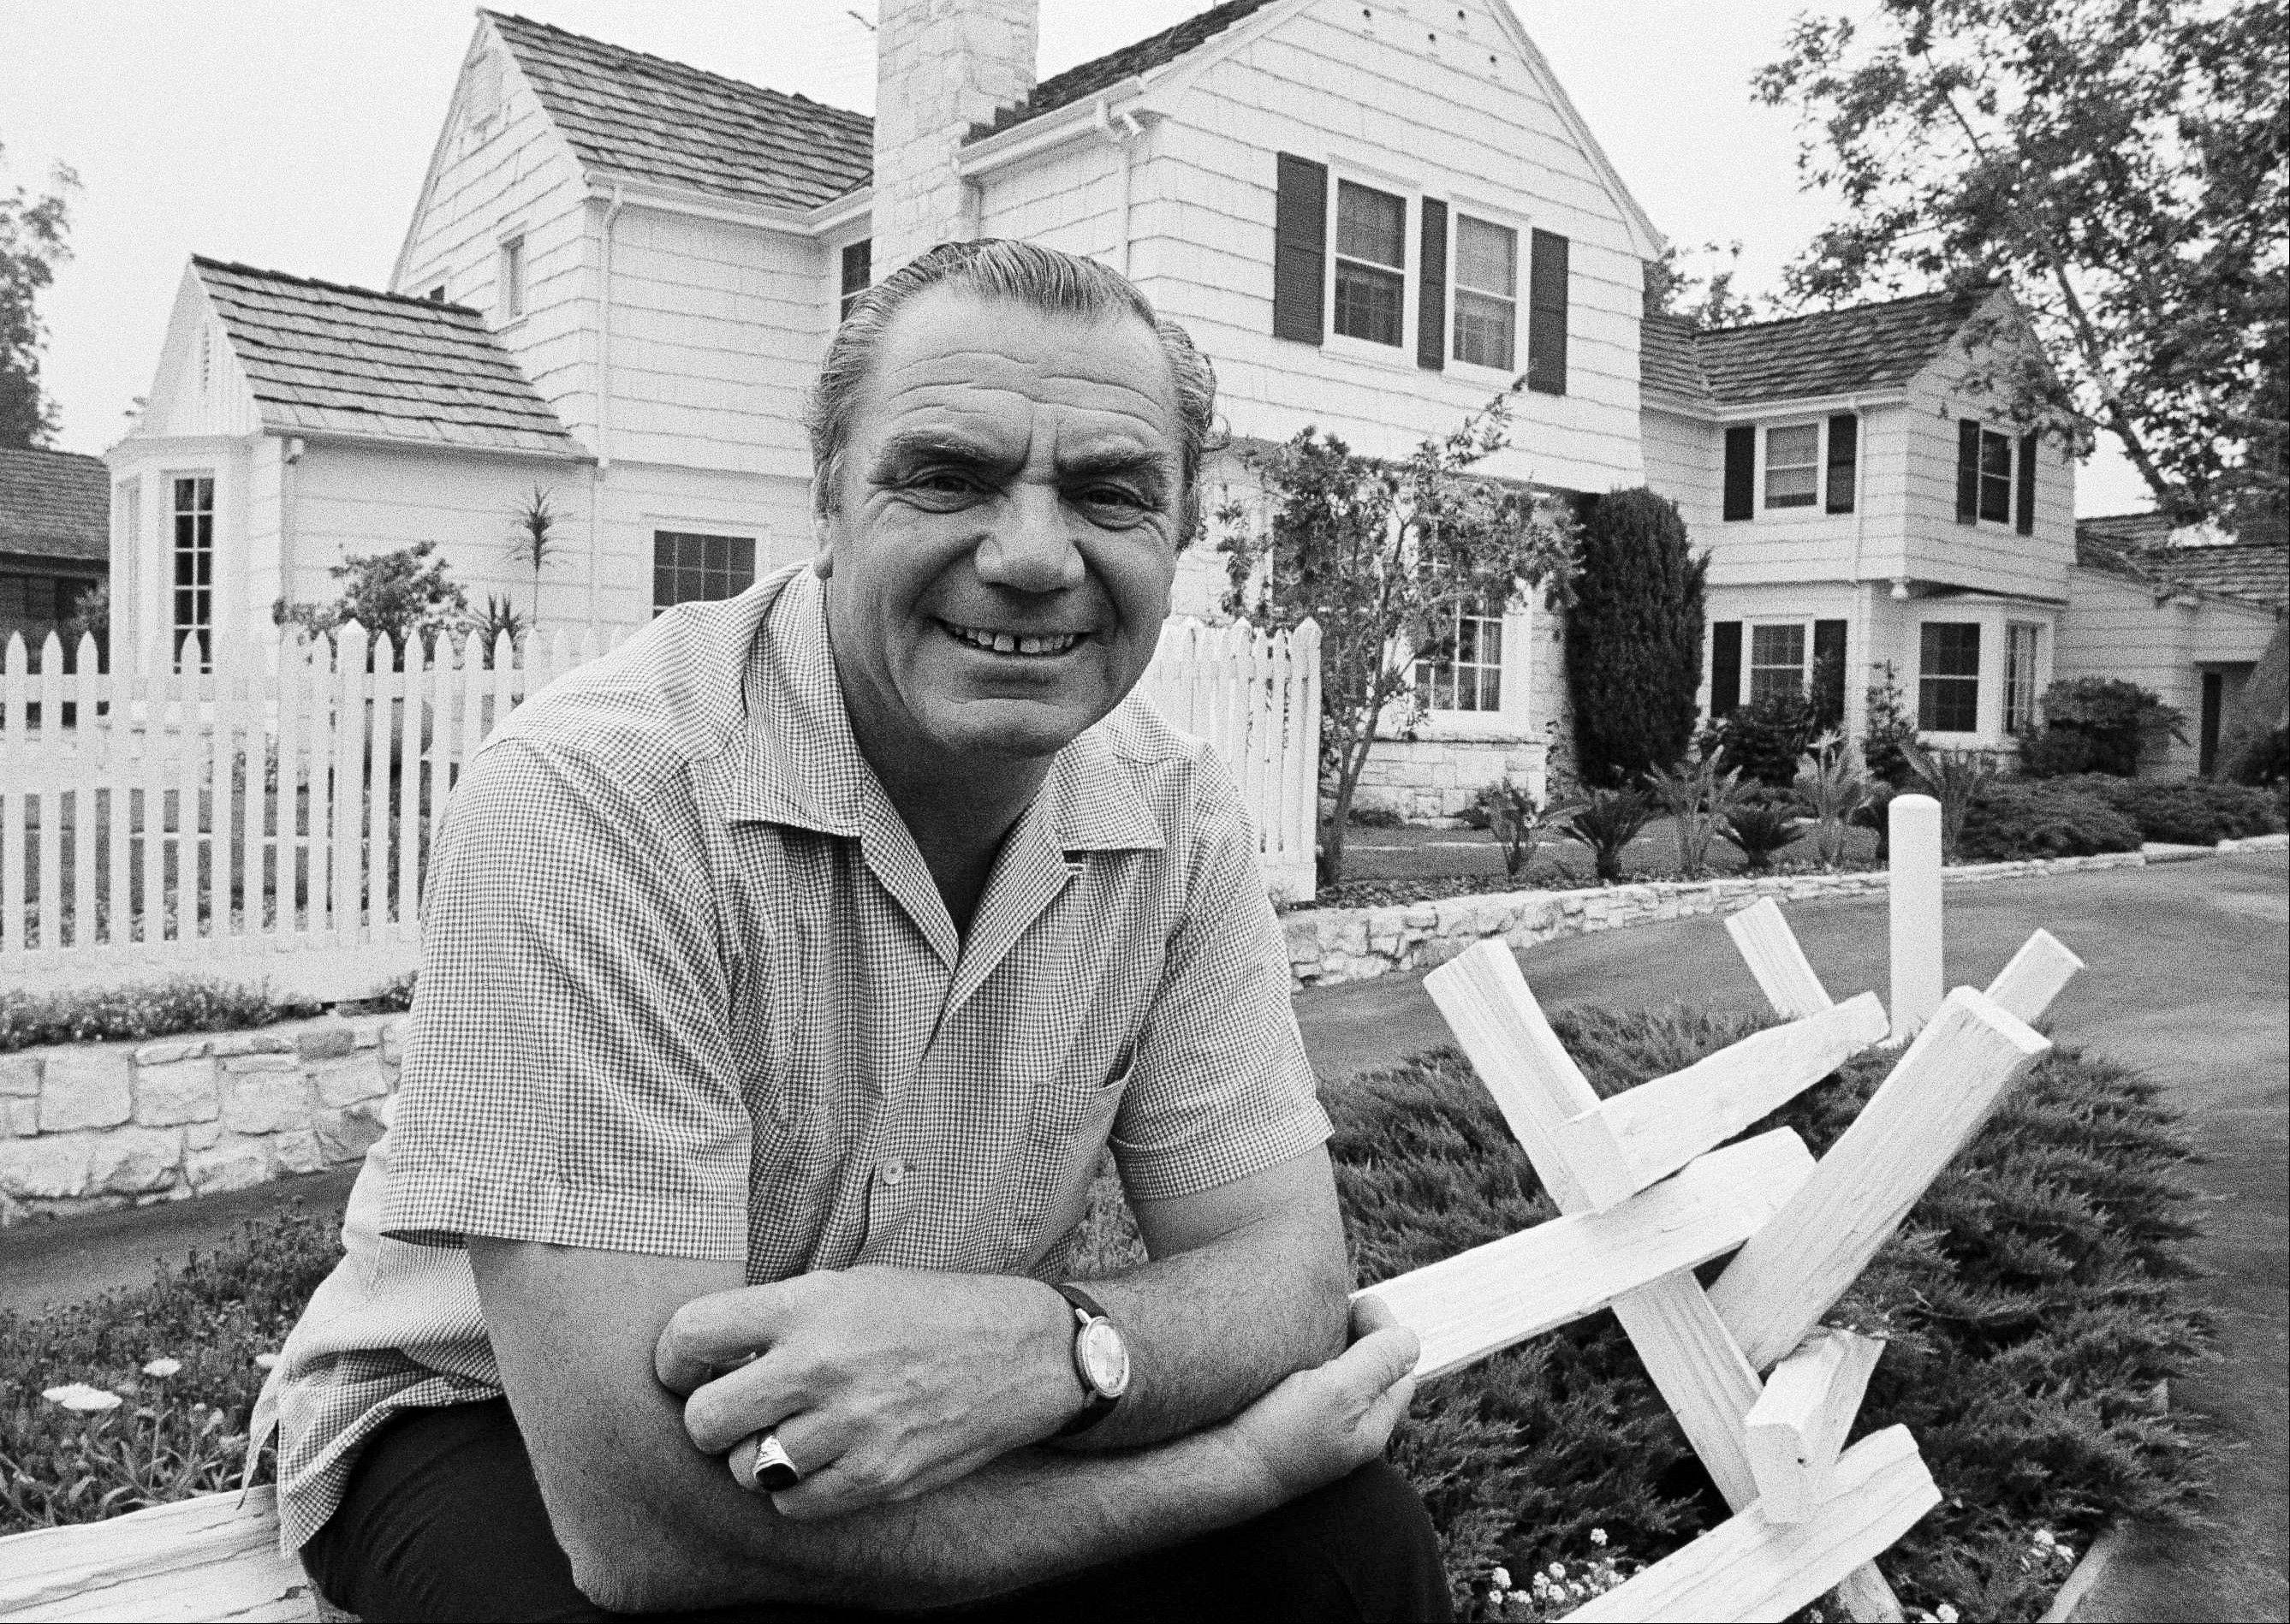 FILE - In this July 1, 1969, file photo, actor Ernest Borgnine poses in front of his home in the mountains above Hollywood, Calif. A spokesman said Sunday, July 8, 2012, that Borgnine has died at the age of 95.